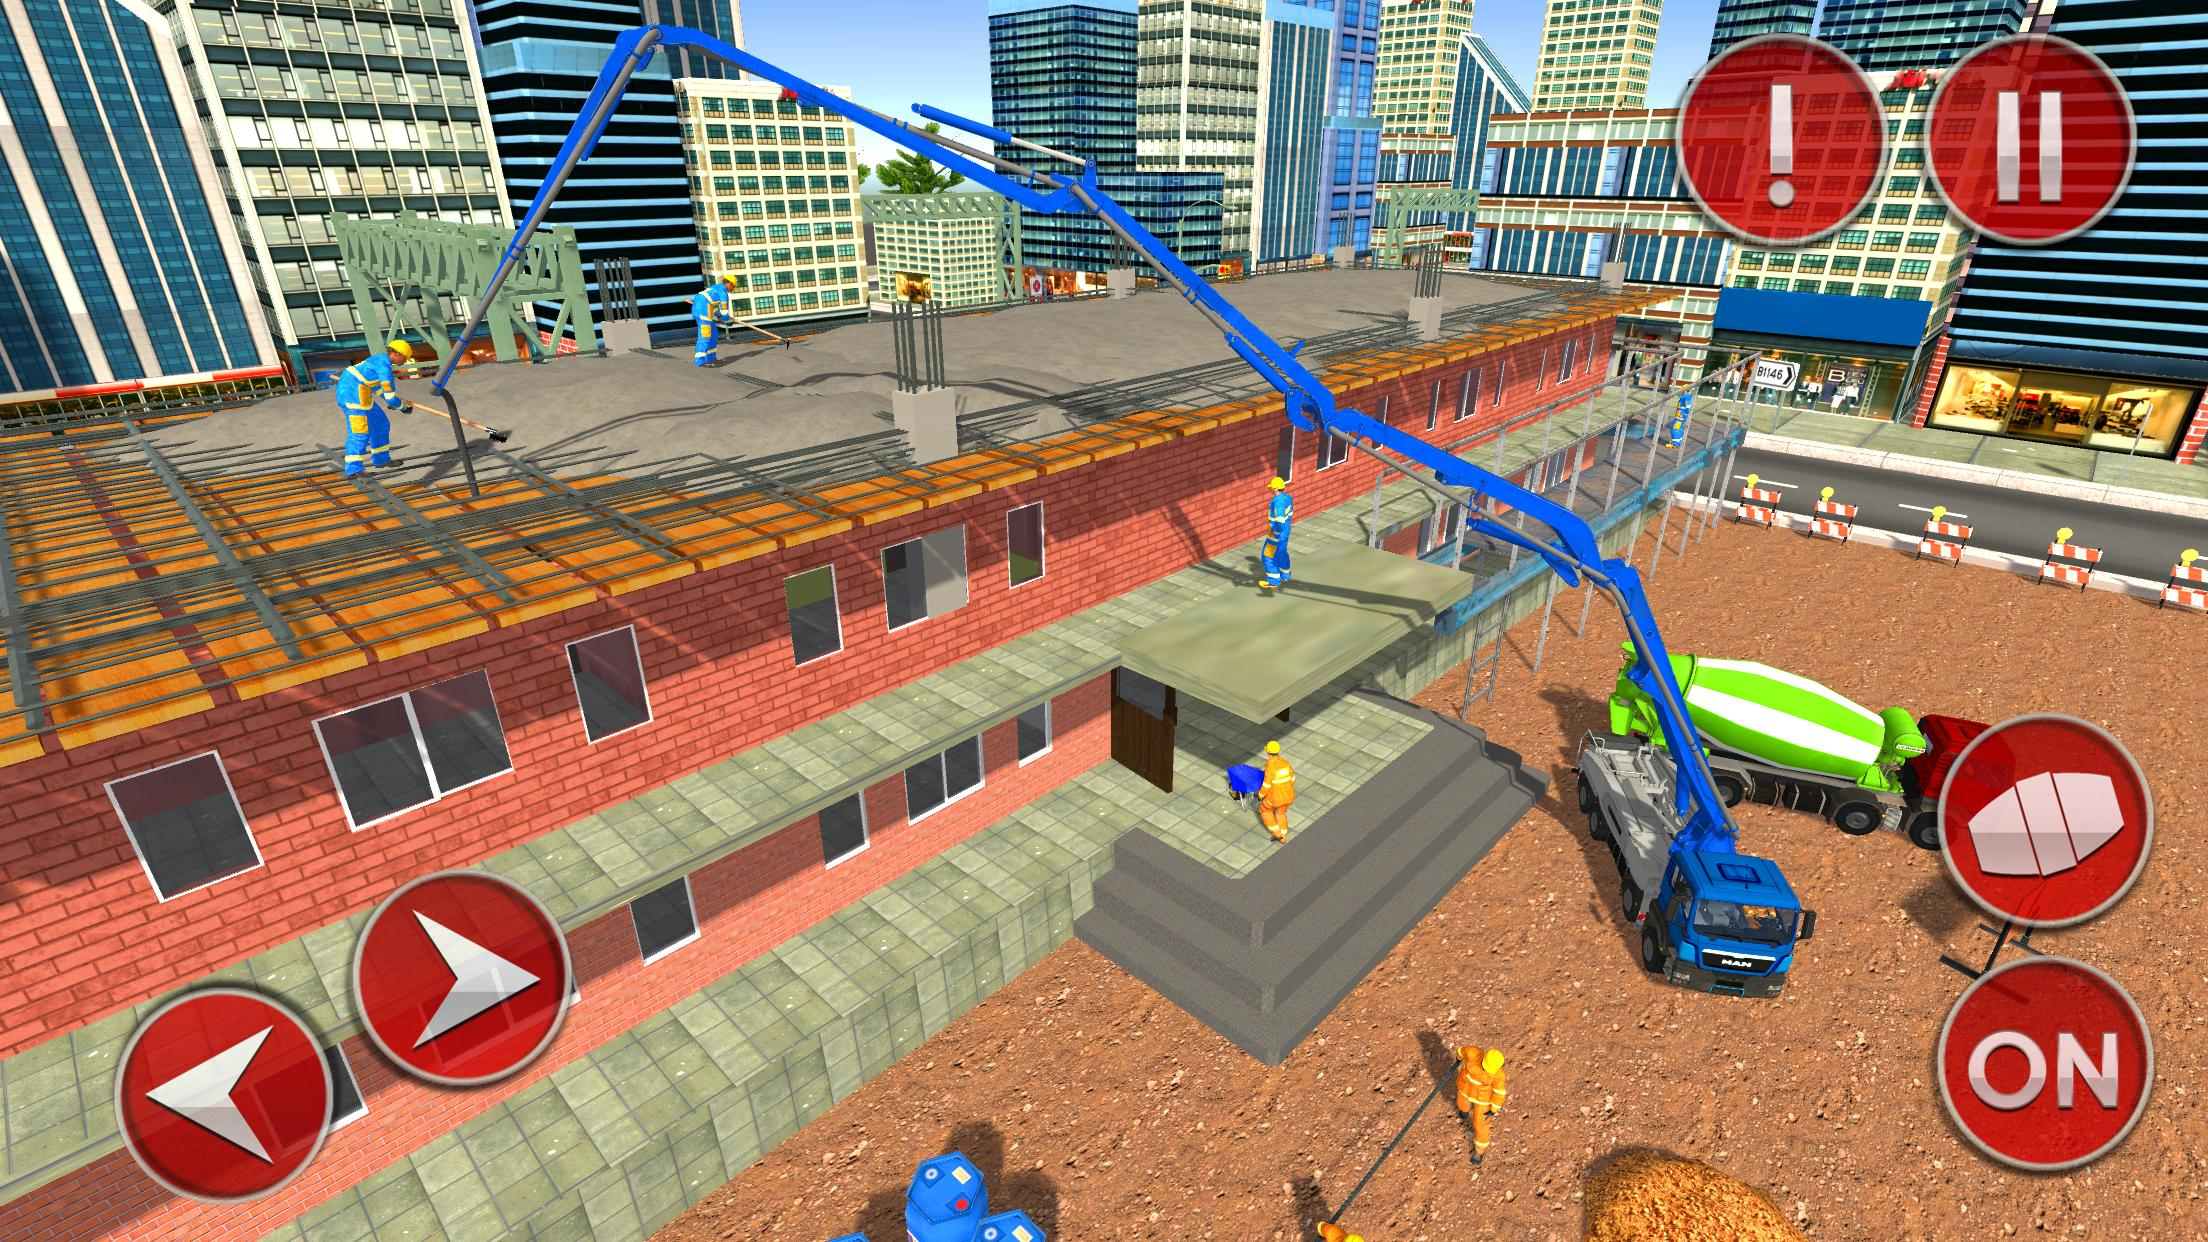 Medical School Construction for Android - APK Download